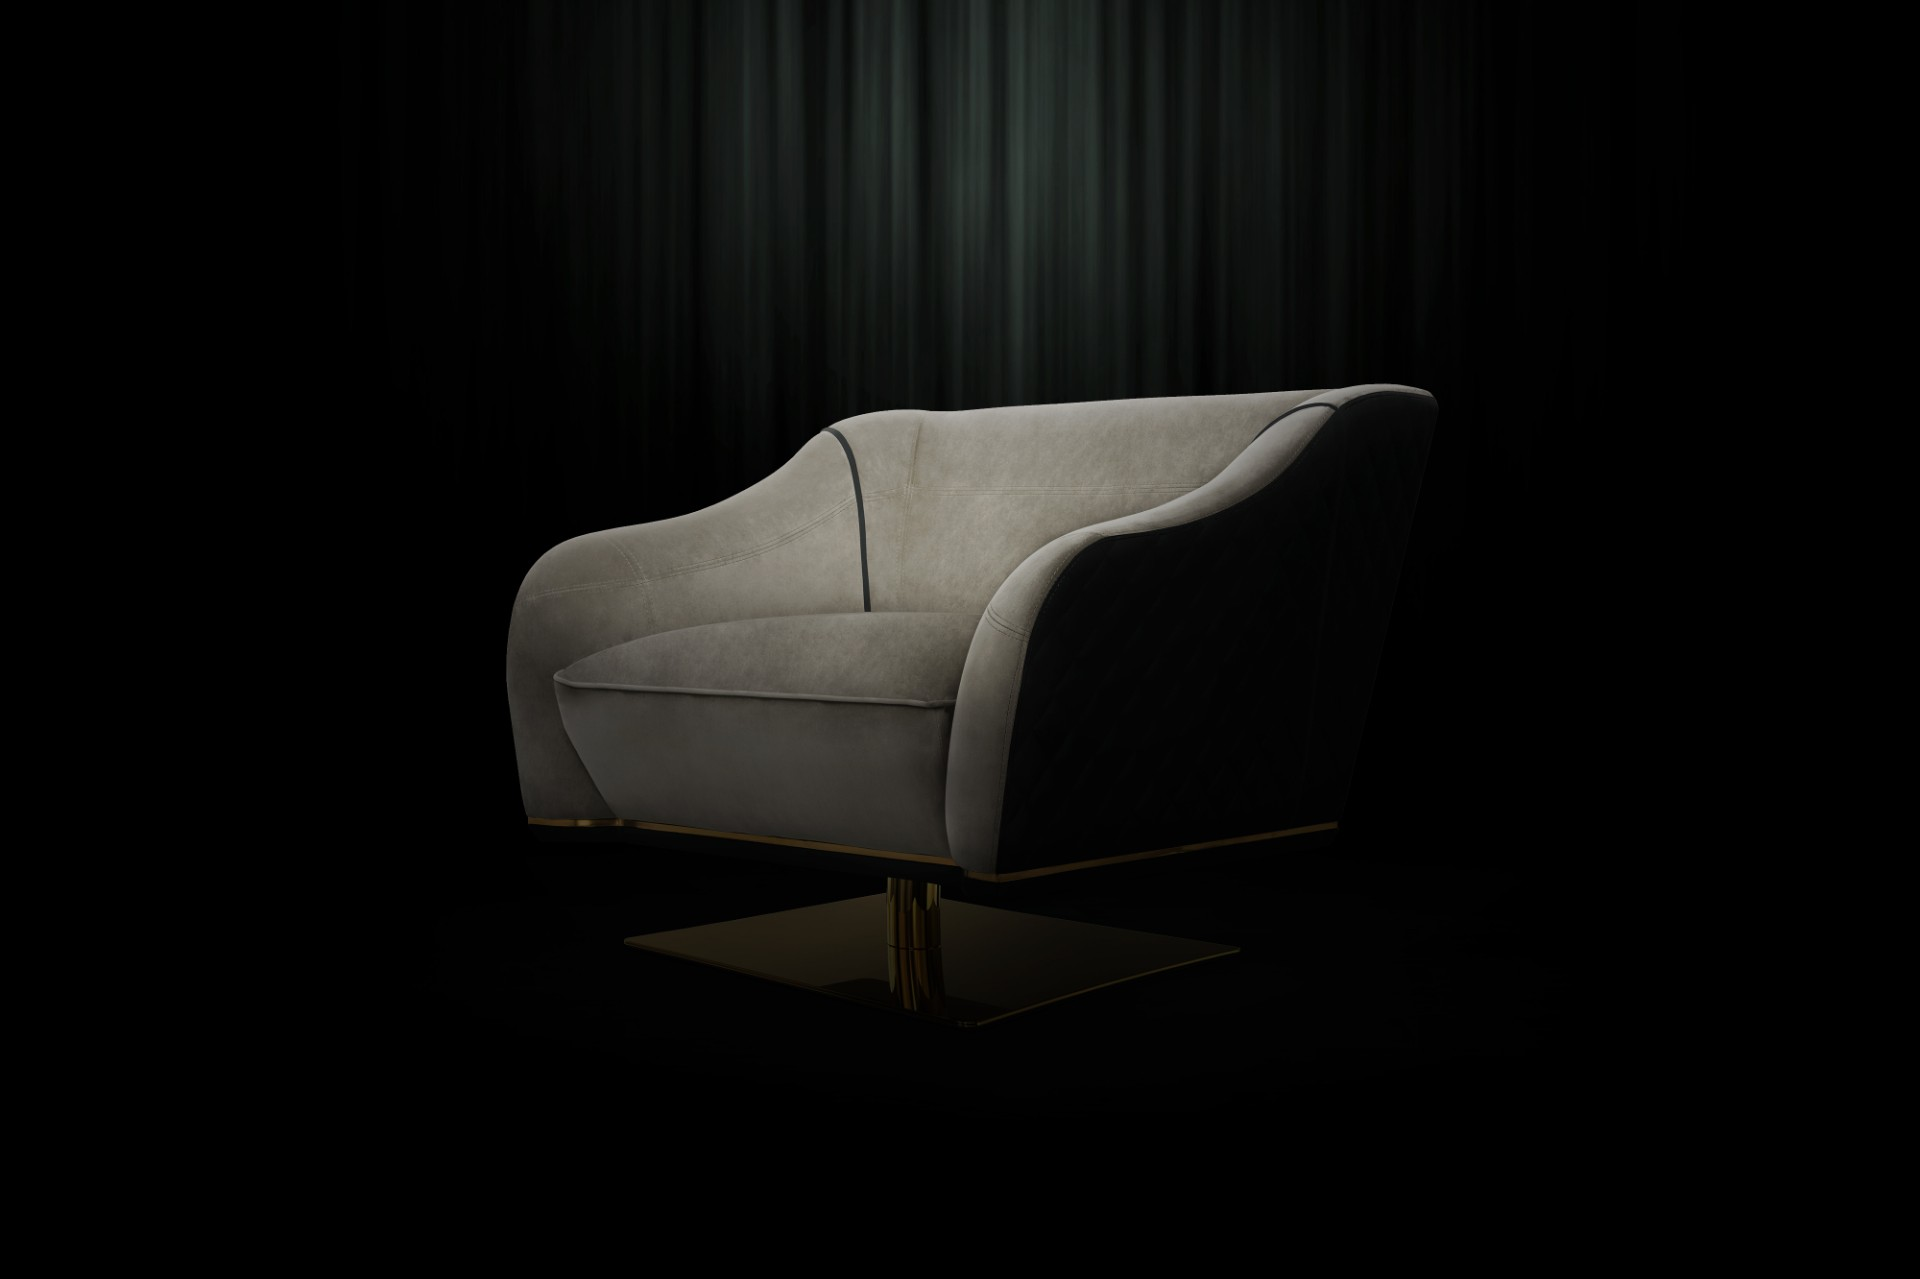 Luxury Design: The Stunning Saboteur Single Sofa wall lamps Ten wall lamps you'll fall in love by LUXXU Luxury Design The Stunning Saboteur Armchair 3 wall lamps Ten wall lamps you'll fall in love by LUXXU Luxury Design The Stunning Saboteur Armchair 3